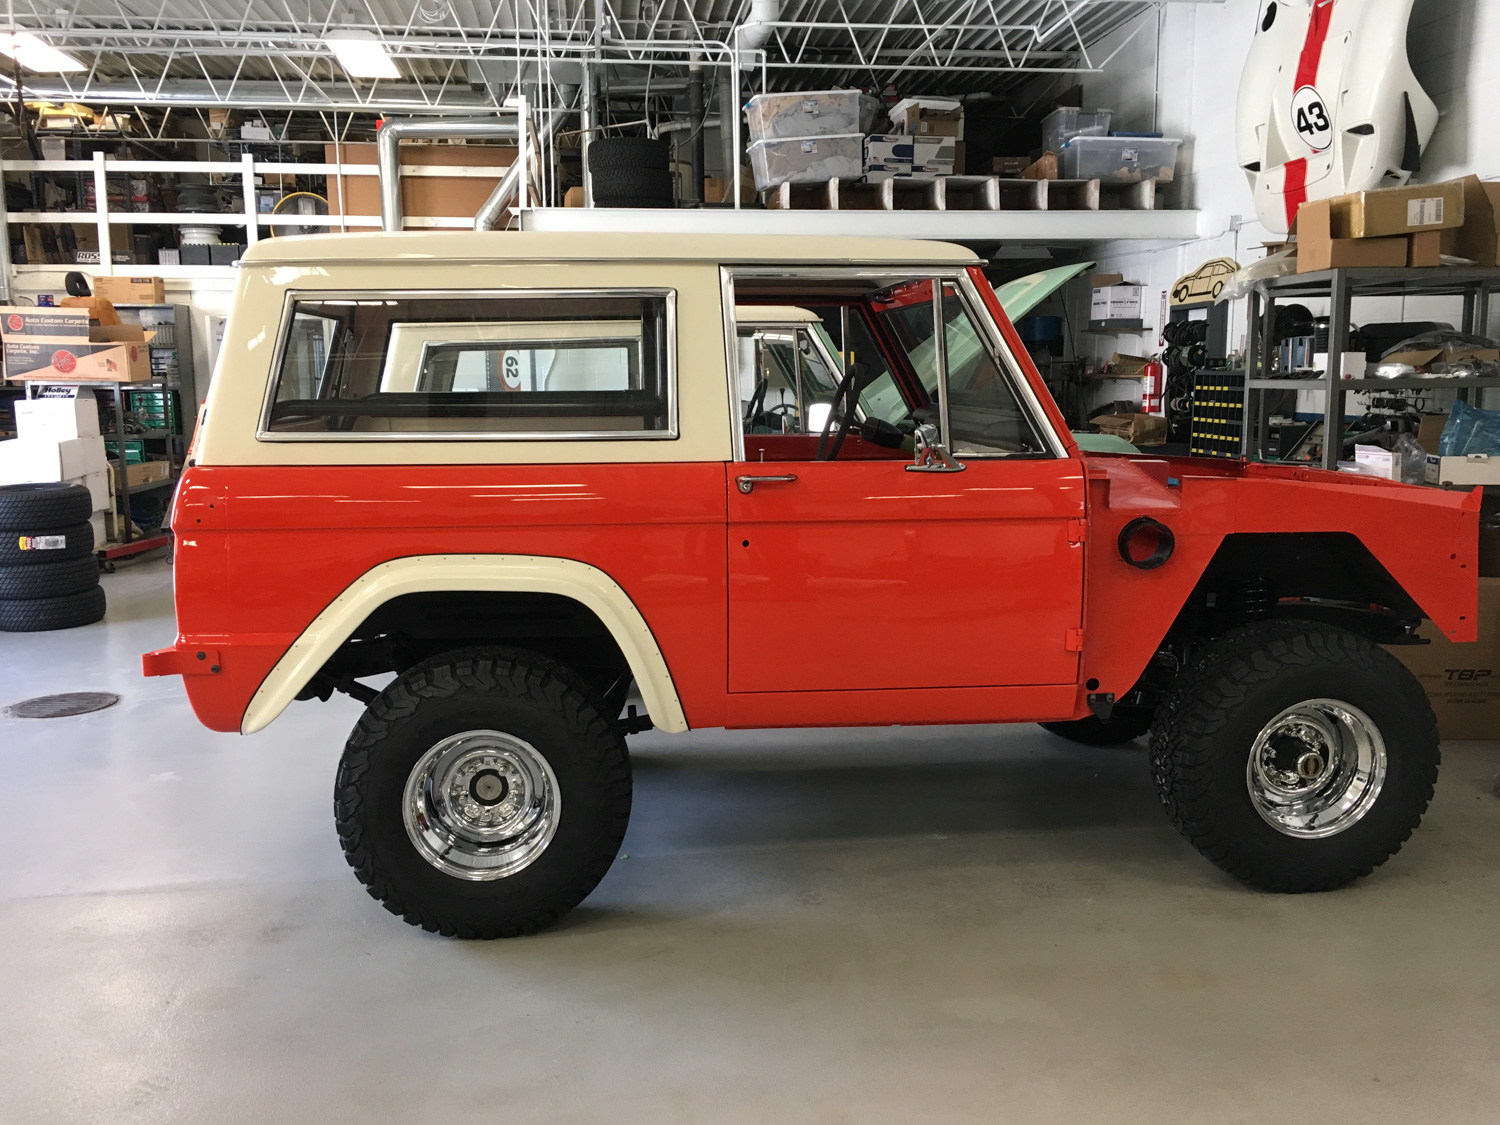 1969 Bronco Hunter Holman and Moody painted side profile